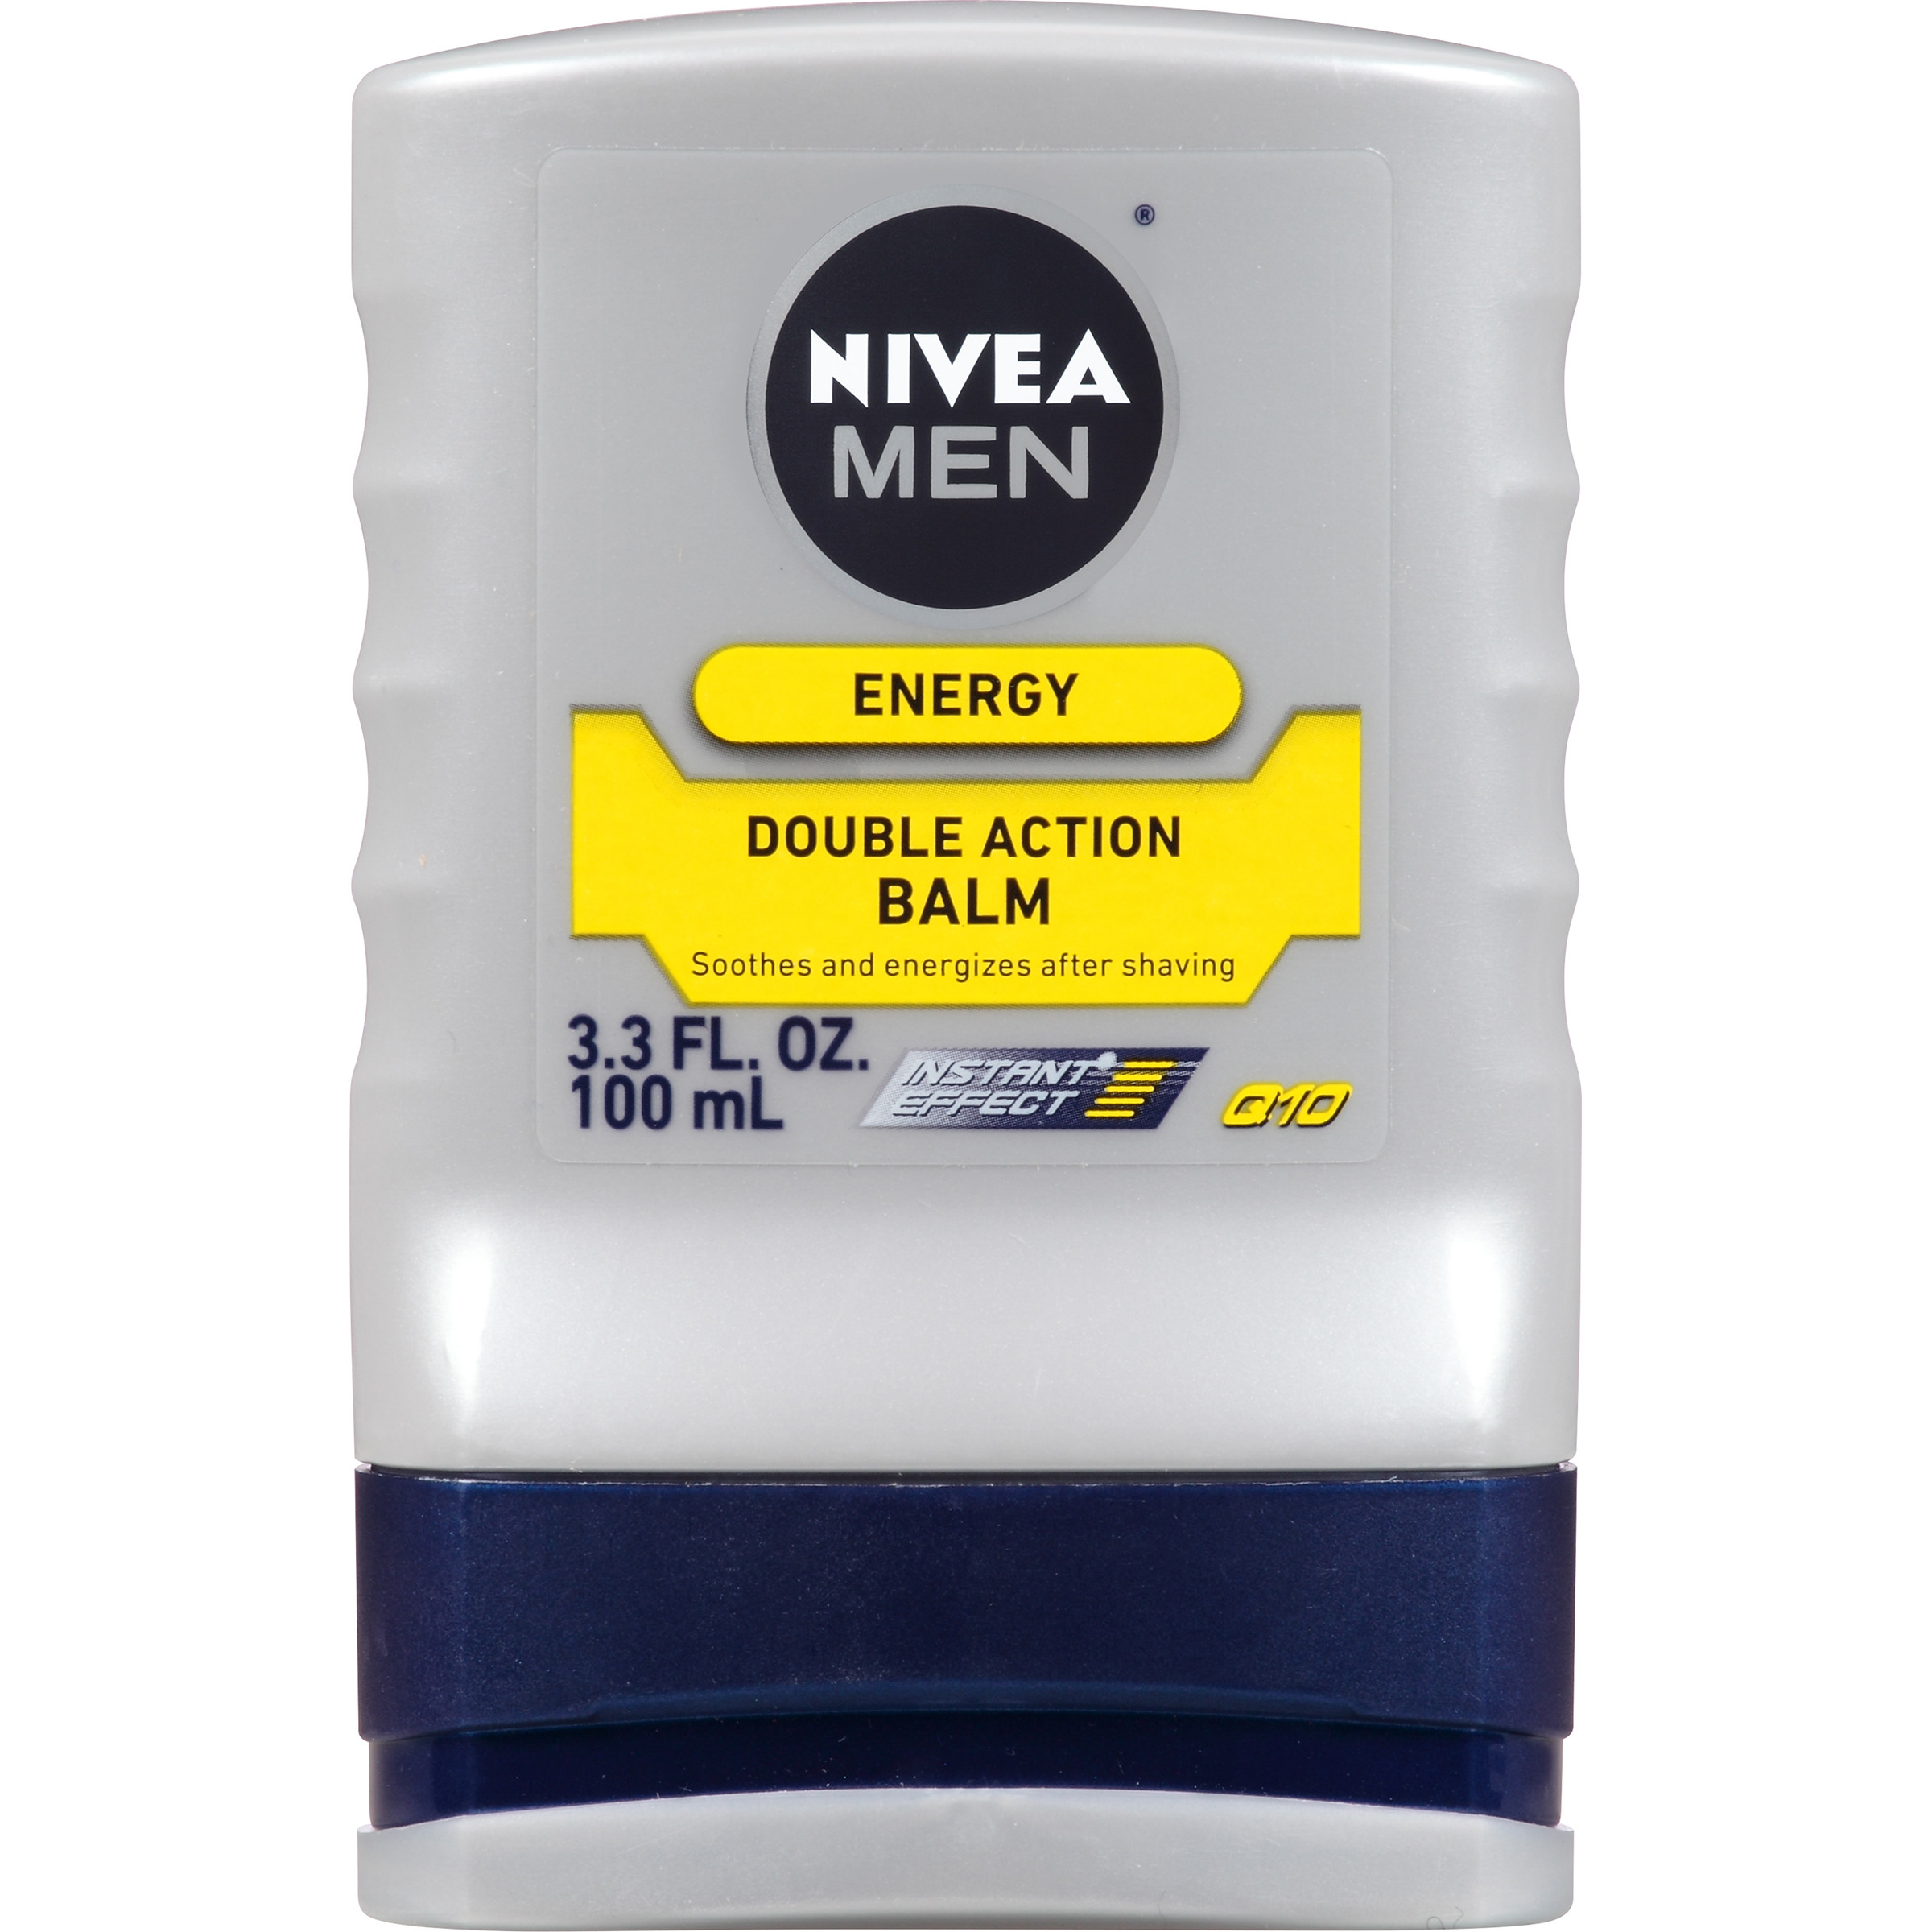 NIVEA Men�� Energy Double Action Balm 3.3 fl. oz.